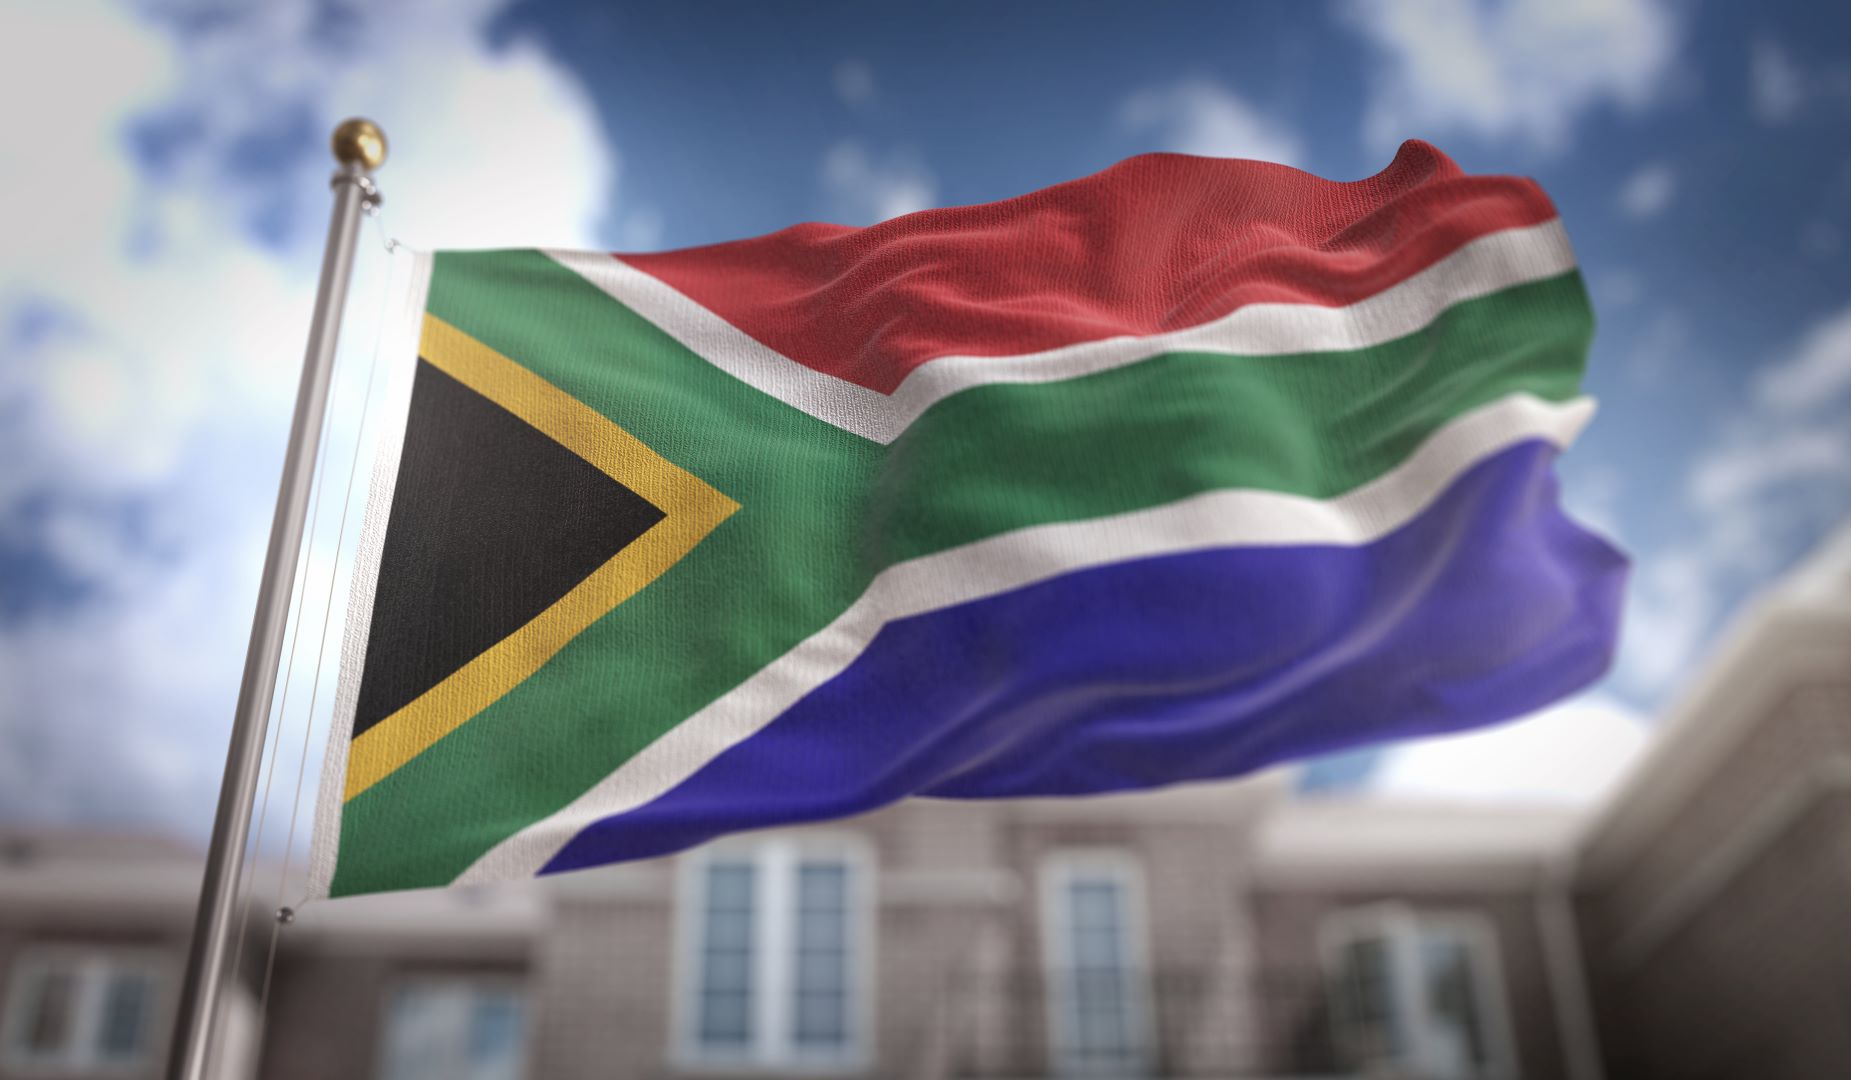 South African economy's financial outflows accelerate in Q2